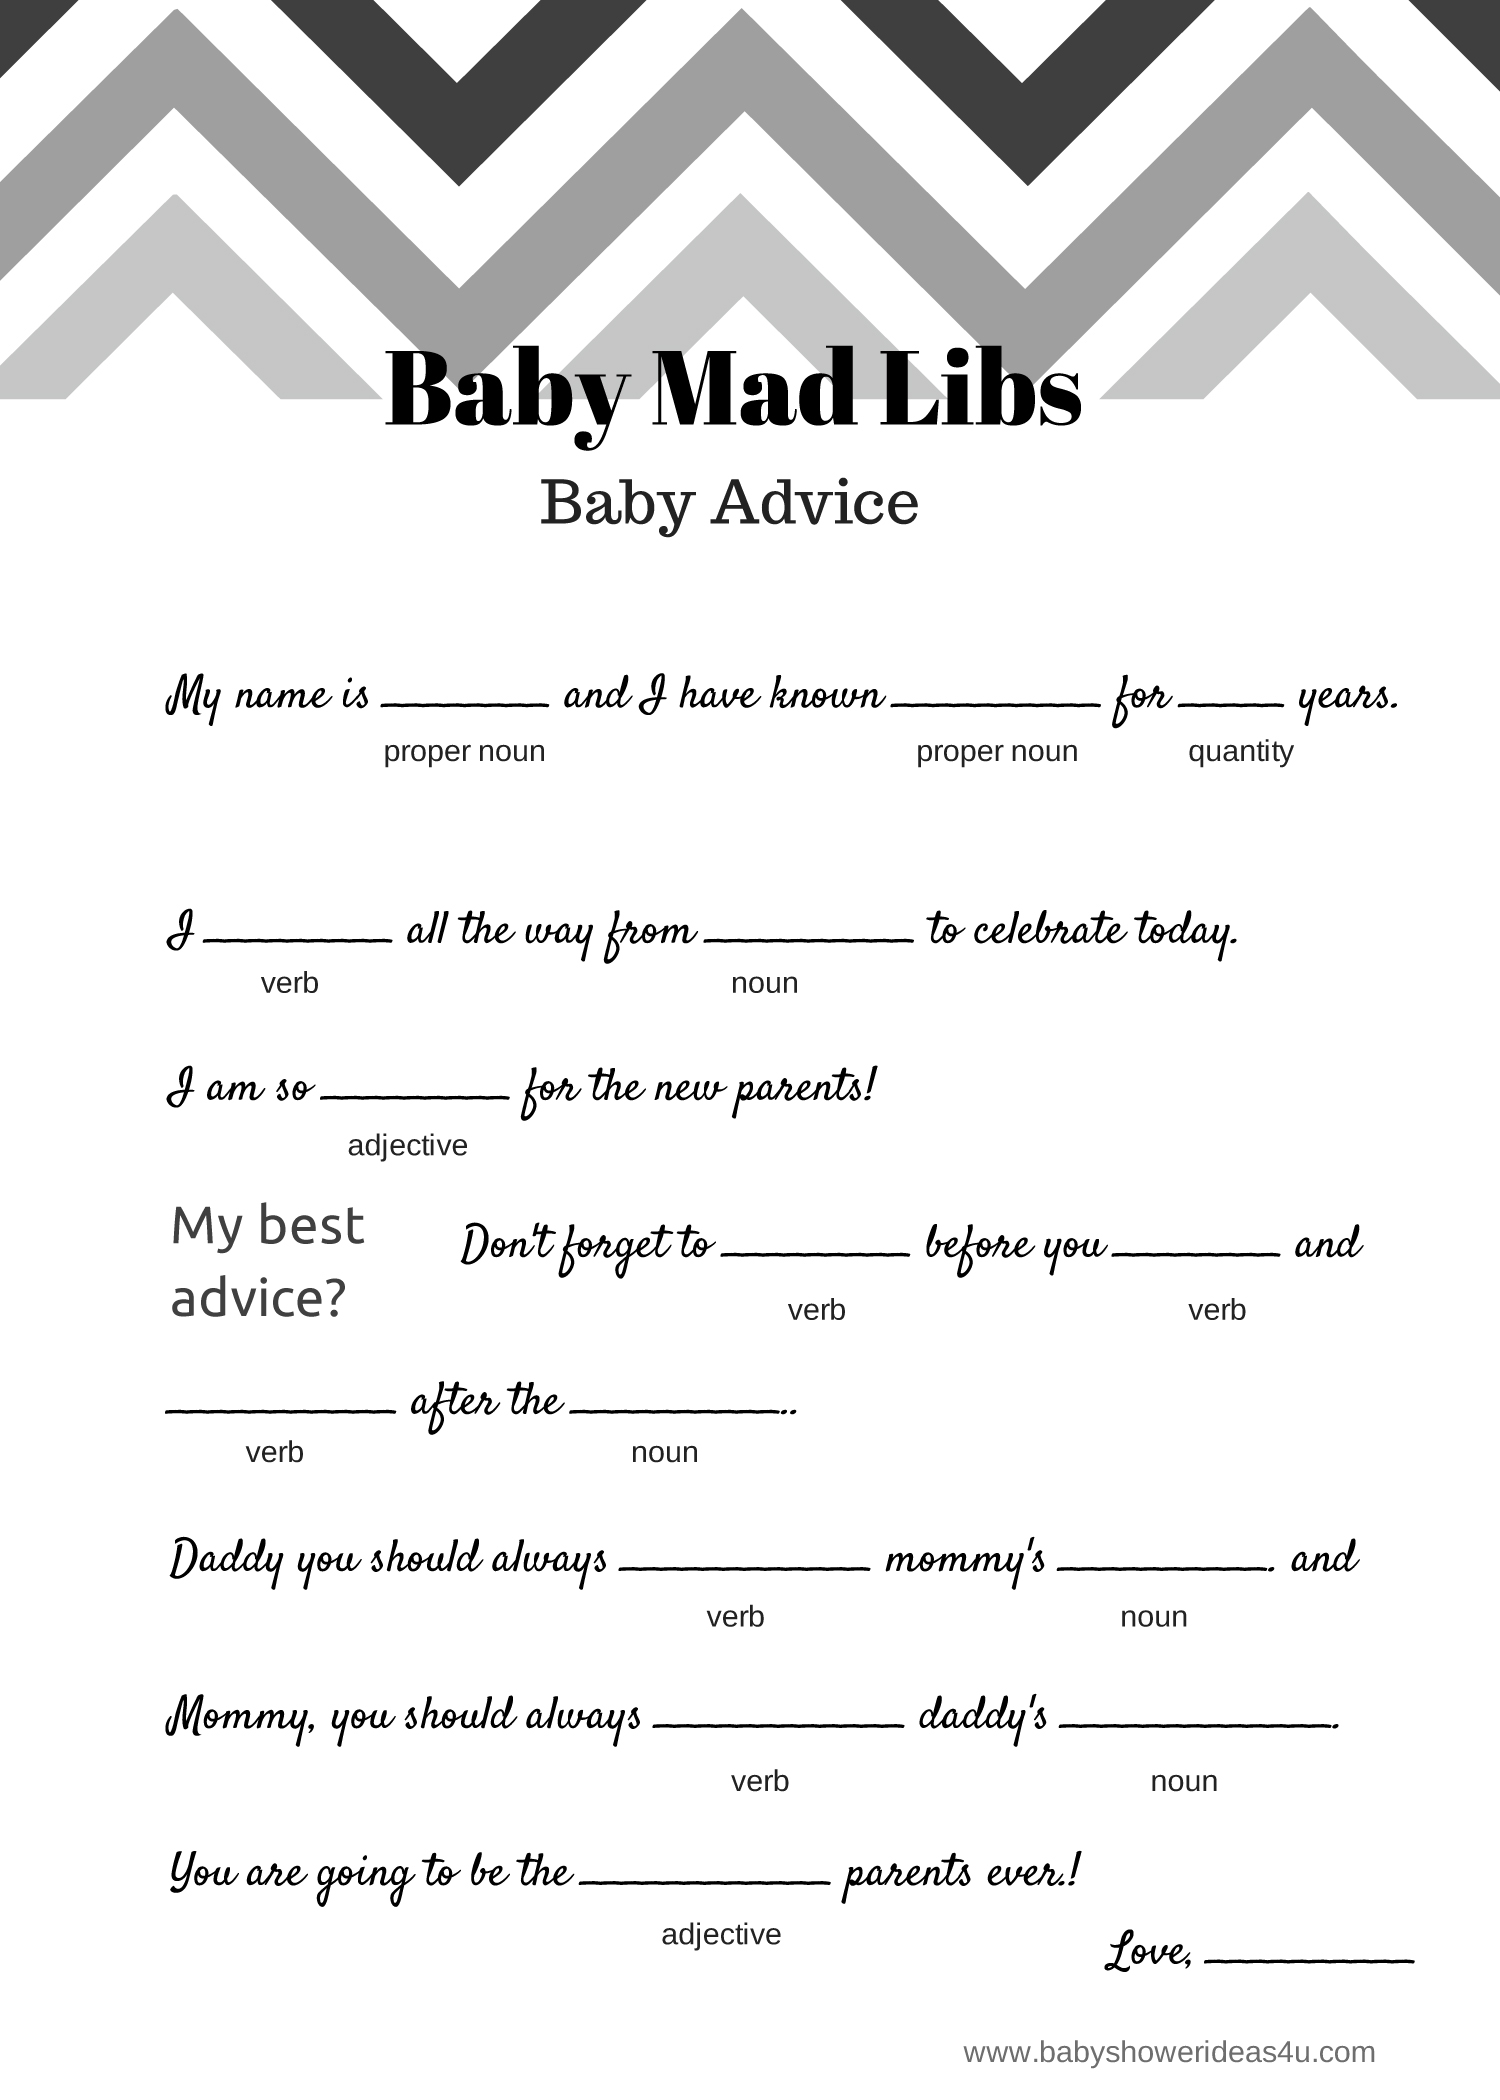 Free Baby Mad Libs Game Baby Advice Baby Shower Ideas